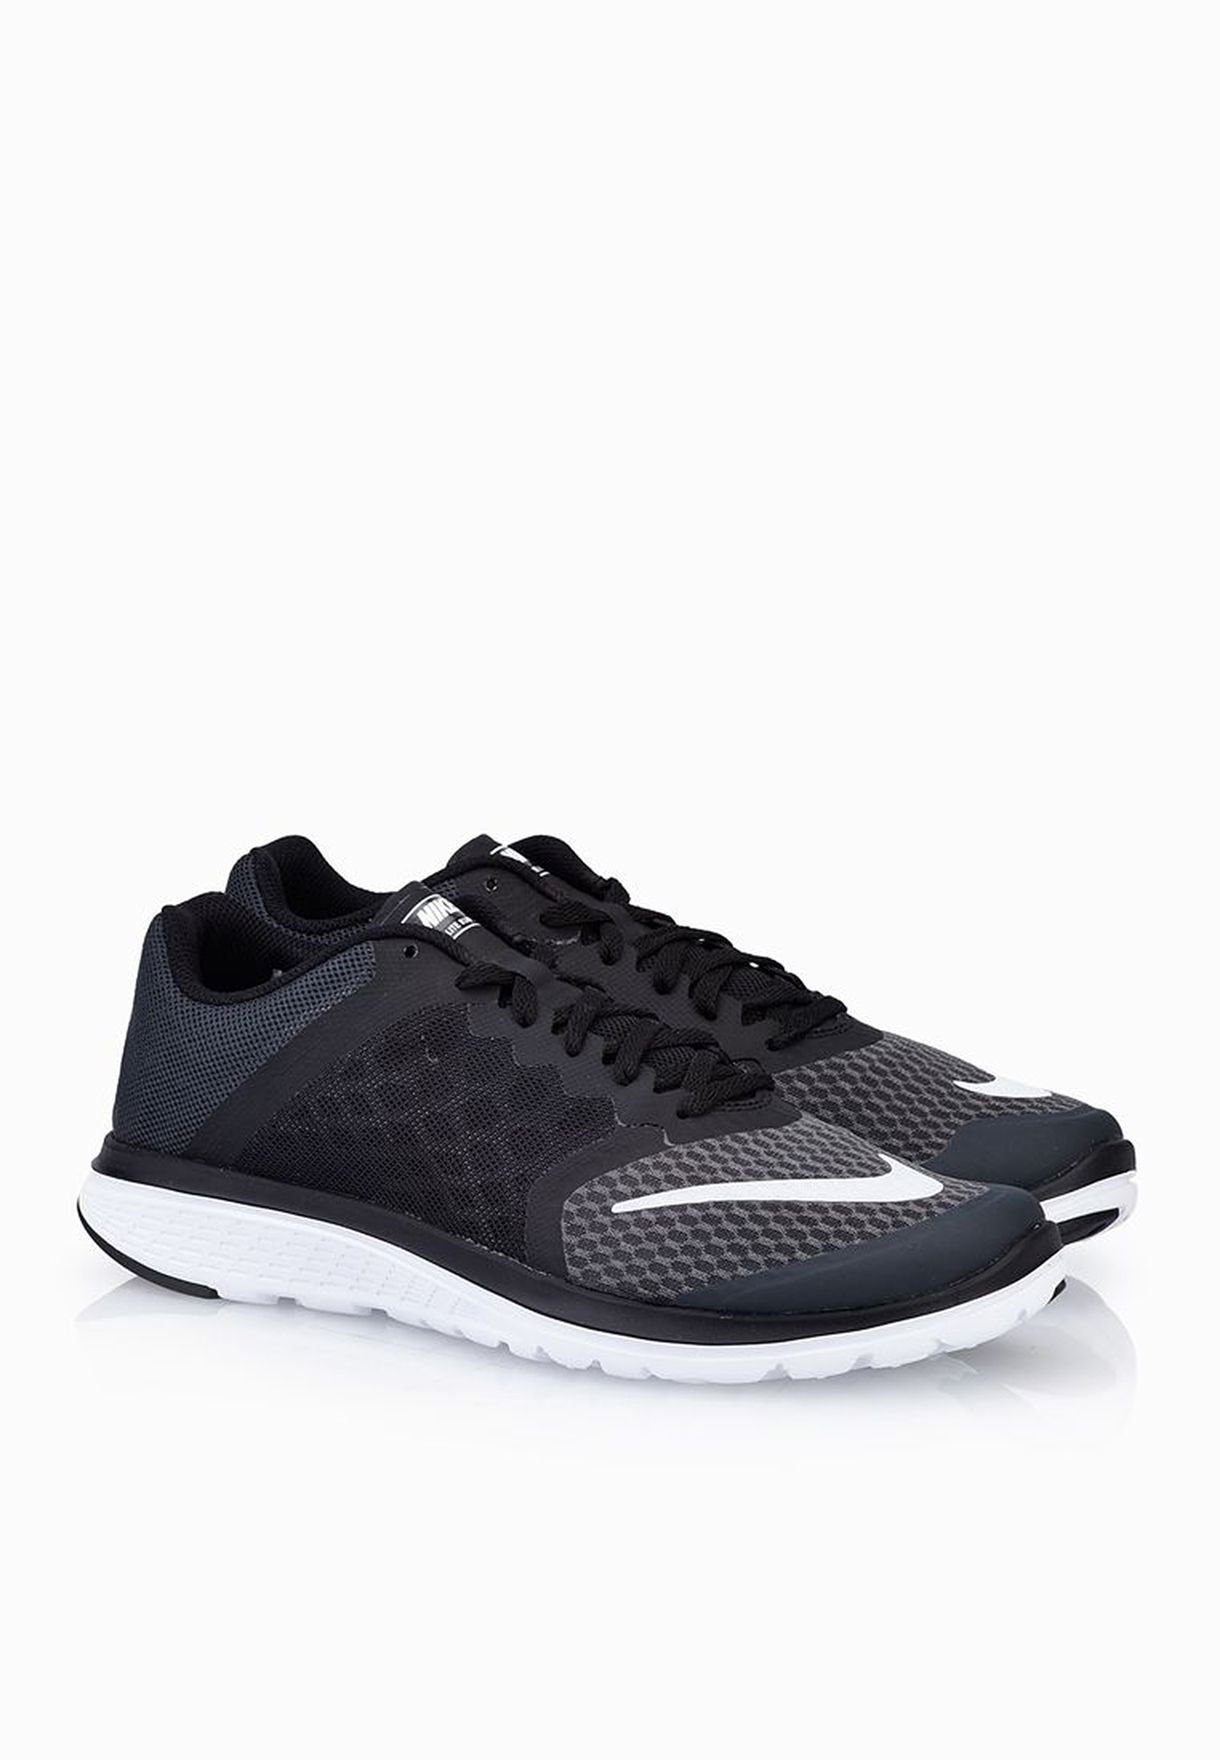 38c1ae35b156 Shop Nike black Fs Lite Run 3 807145-001 for Women in Saudi ...